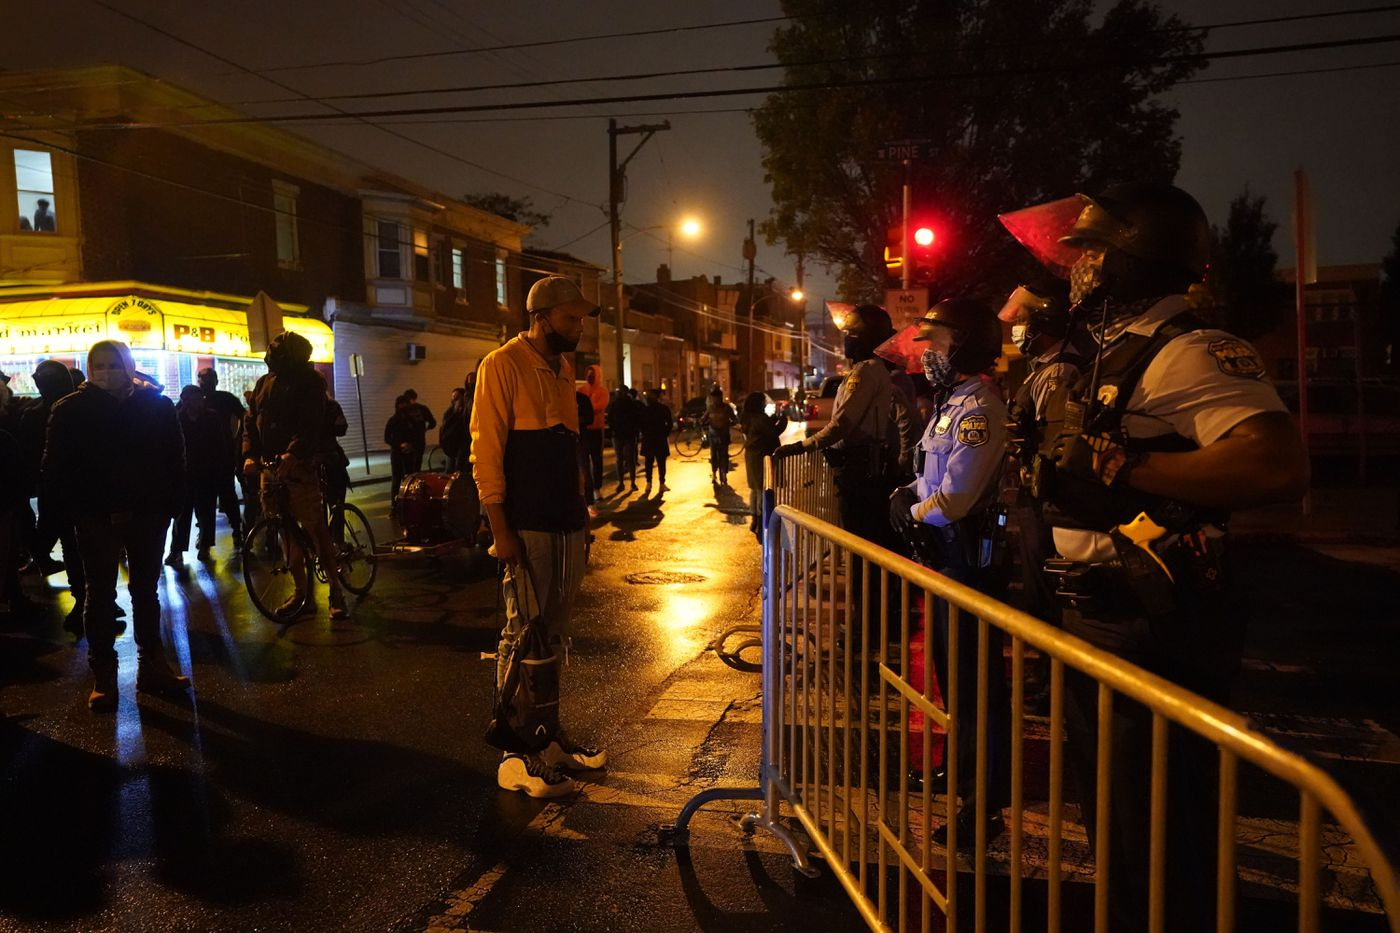 Protest in response to the police shooting of Walter Wallace Jr. on Monday after police officers fatally shot the 27-year-old Black man in West Philadelphia.